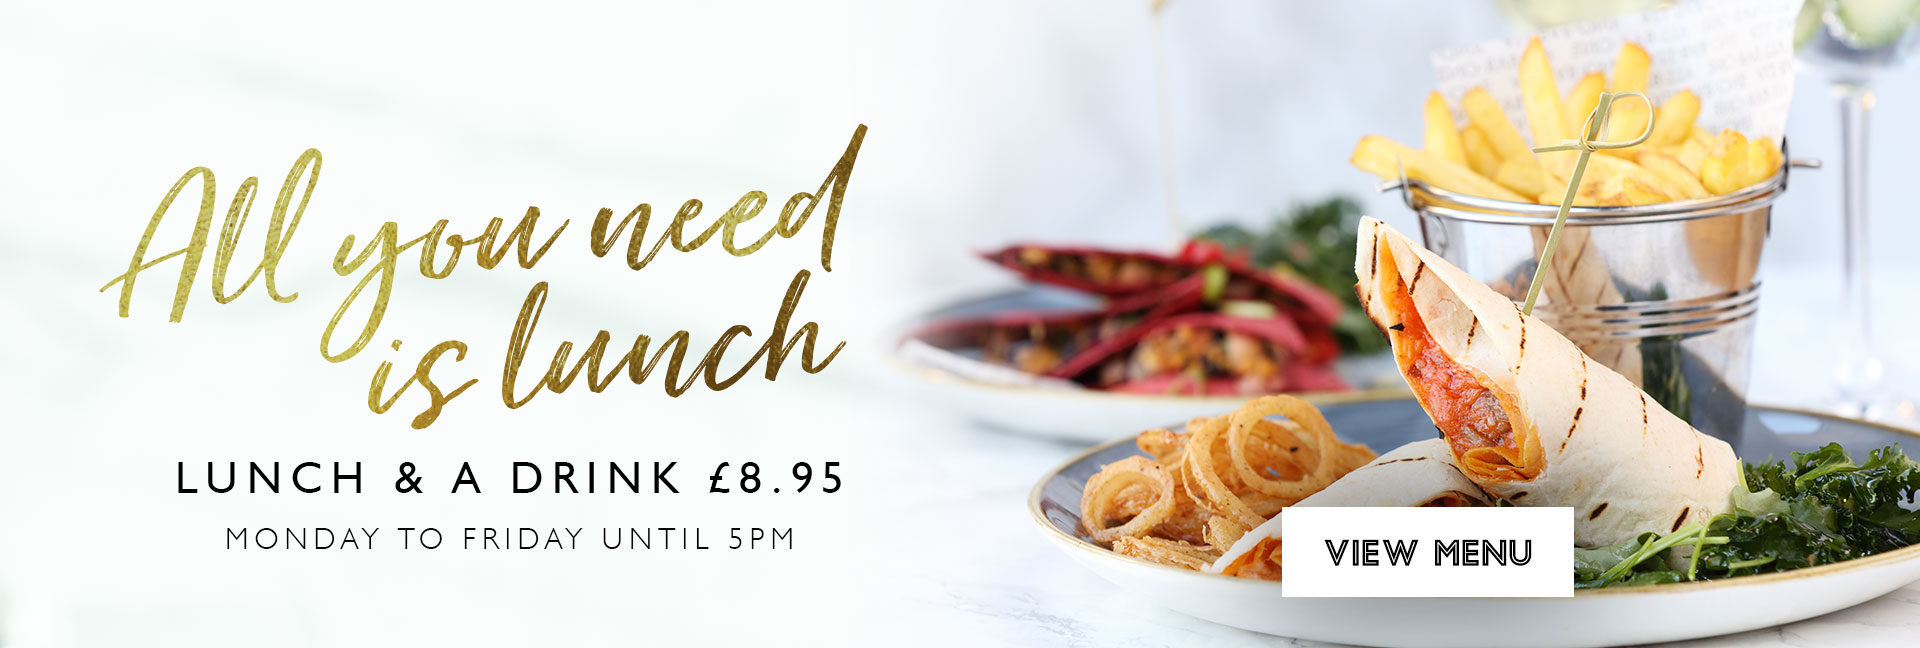 Lunch Offer at All Bar One Windsor